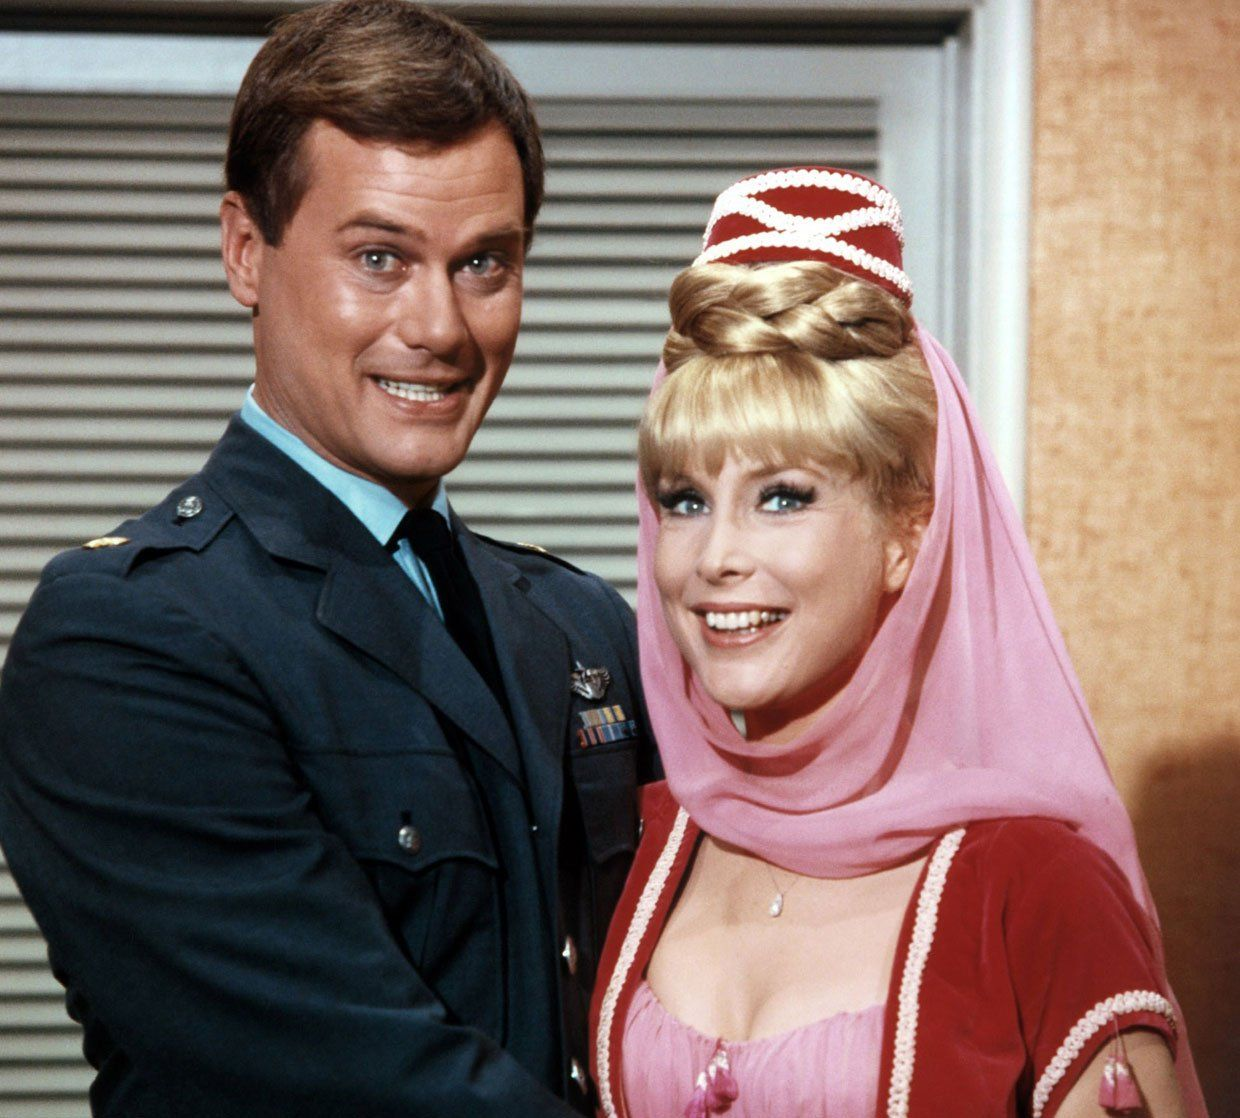 How Well Do You Remember I Dream Of Jeannie?